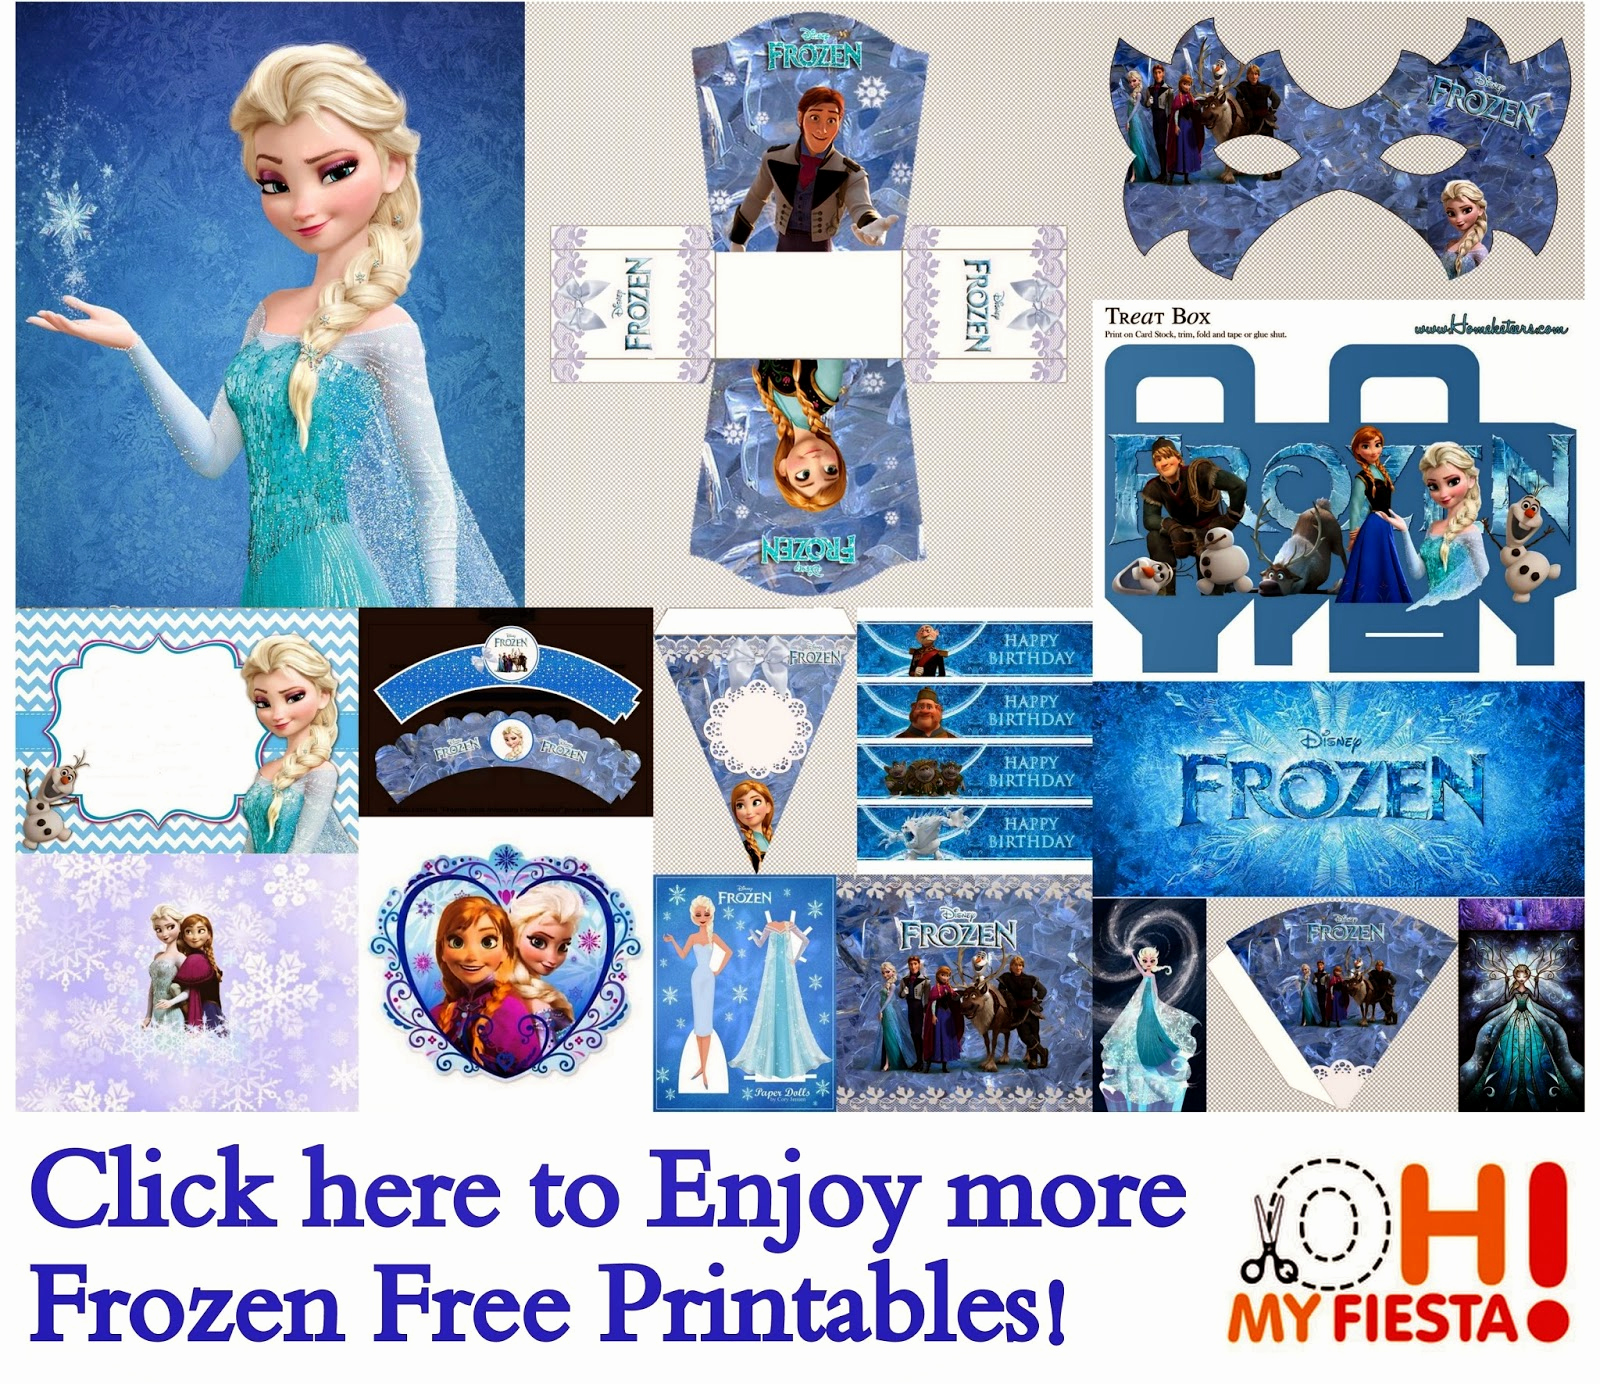 Frozen Invitation Printable Free New Frozen Free Printable Cards or Party Invitations